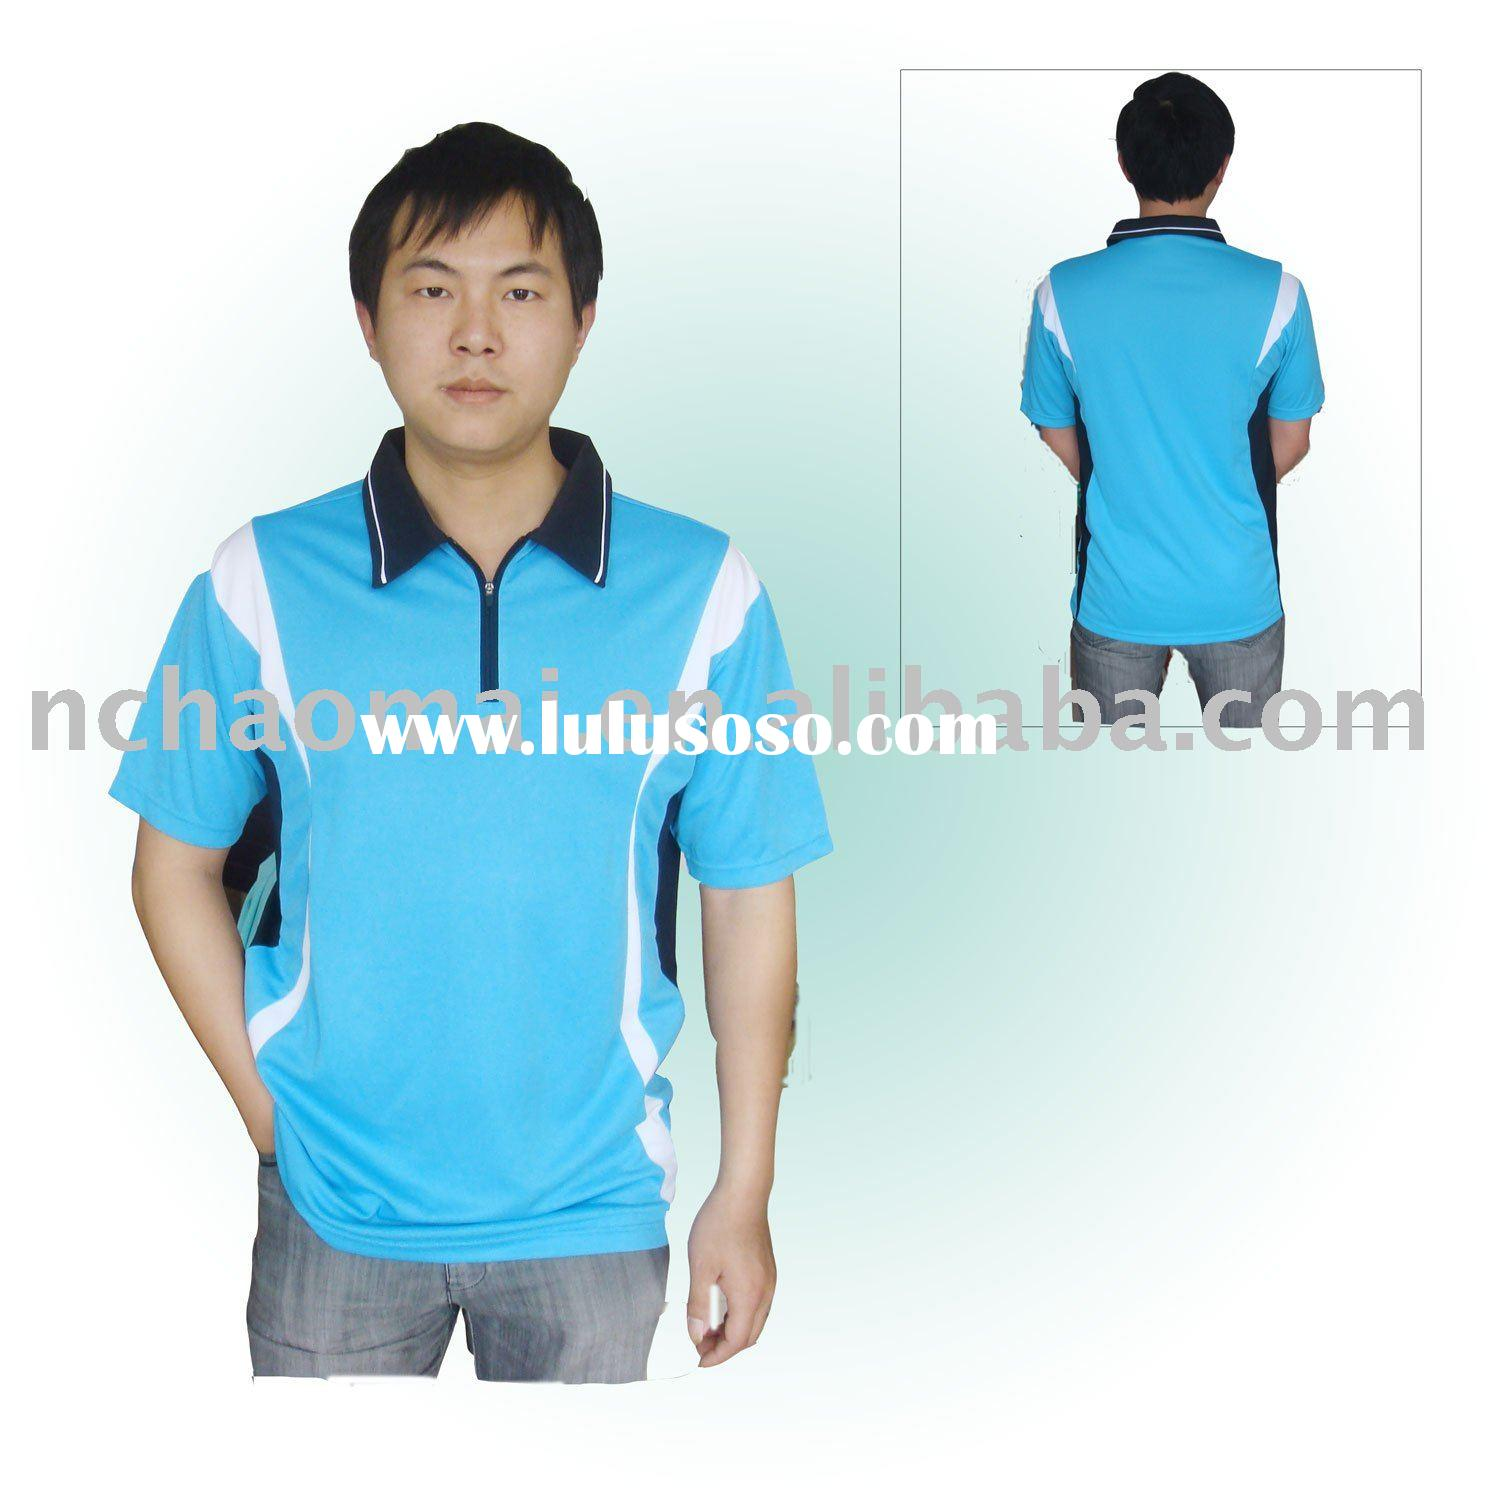 men's high quality fashion polo shirt